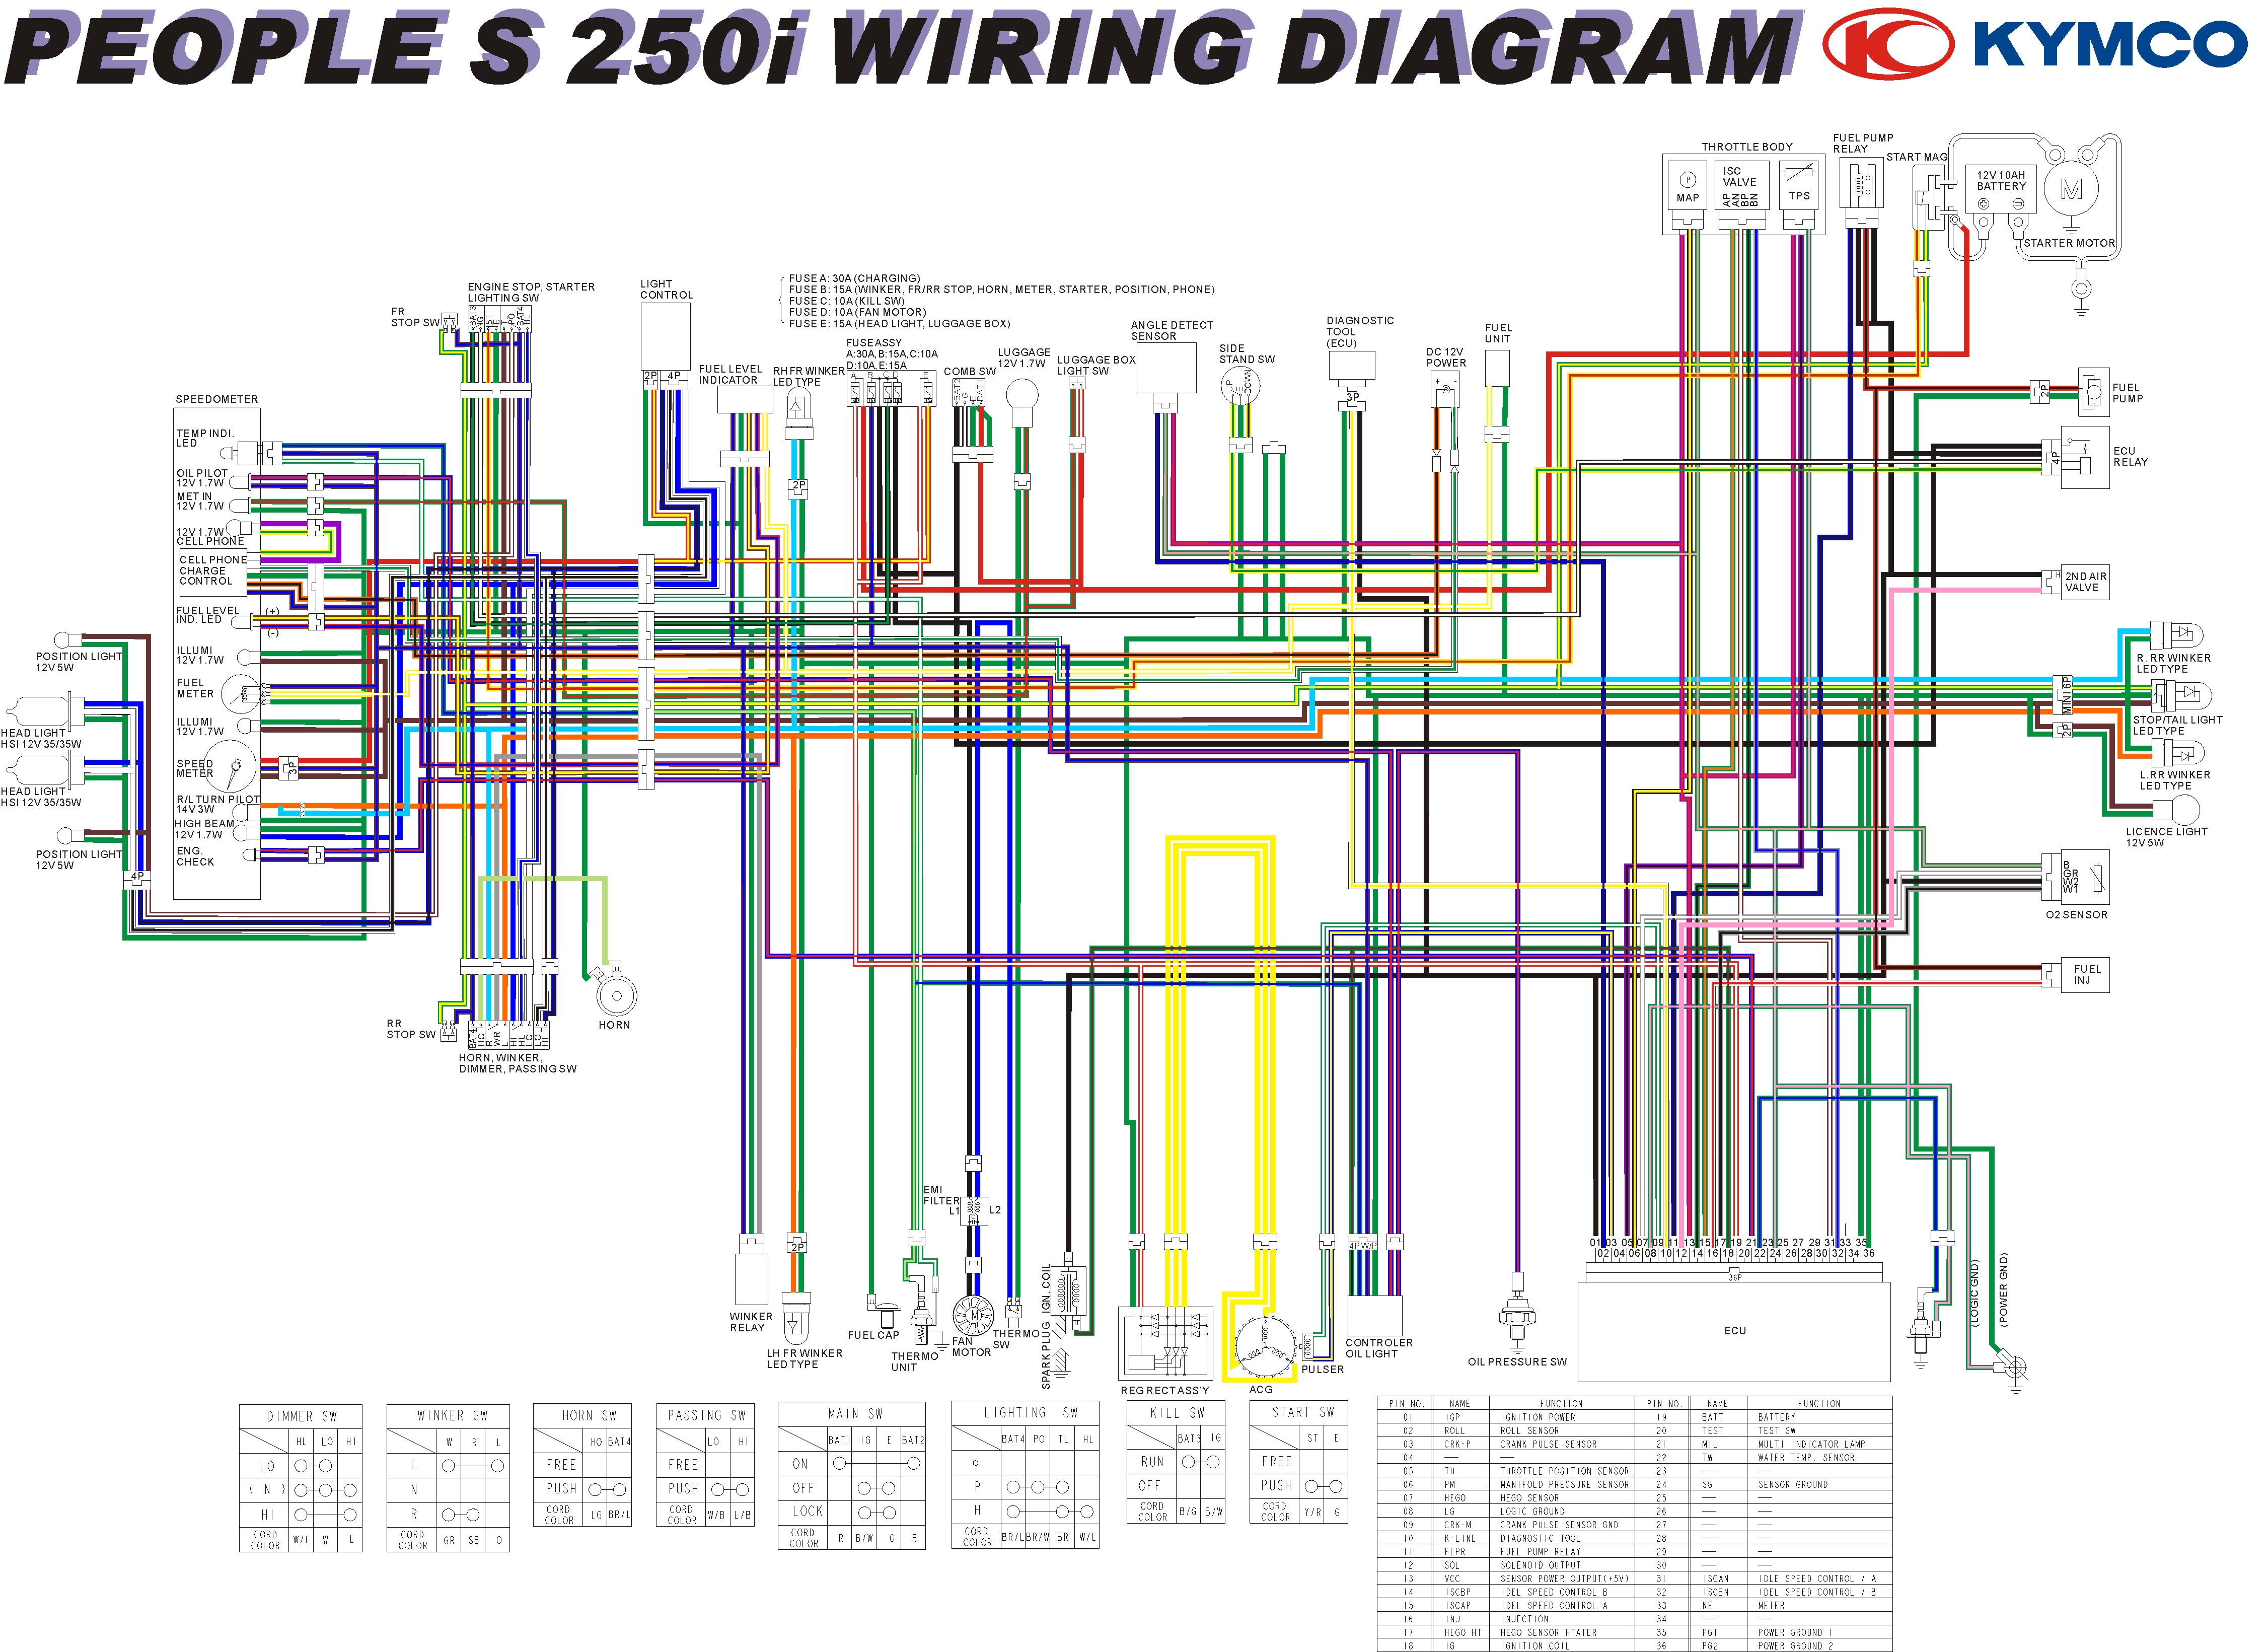 [SCHEMATICS_4NL]  XY_4873] Diagram On Kymco Engine Diagram On Kymco Super 8 50 Wiring Diagram  Free Diagram | Kymco 250cc Wiring Harness |  | Aryon Vell Stic Benkeme Mohammedshrine Librar Wiring 101